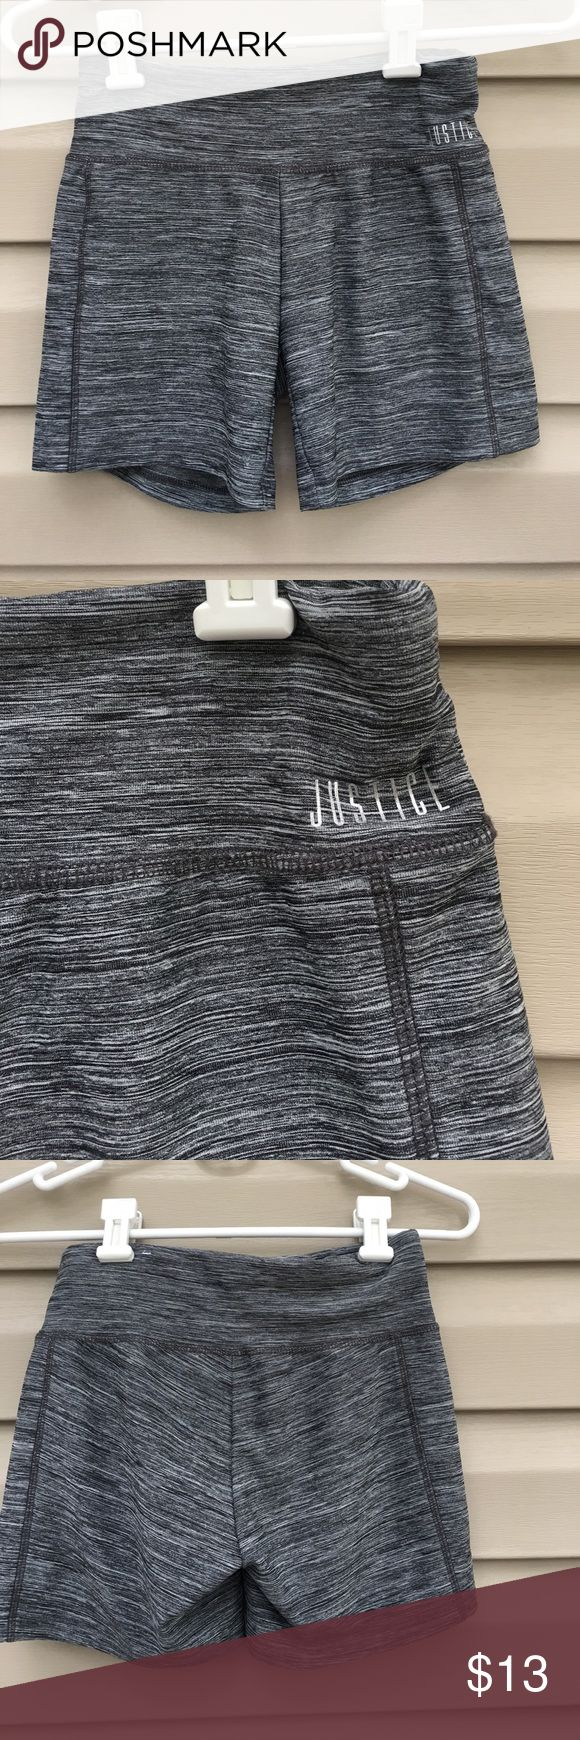 Justice girls gray athletic shorts Like new girls pull-on athletic shorts gray/ silver pattern,88% polyester 12% spandex. No snags, stains or holes. Justice Bottoms Shorts